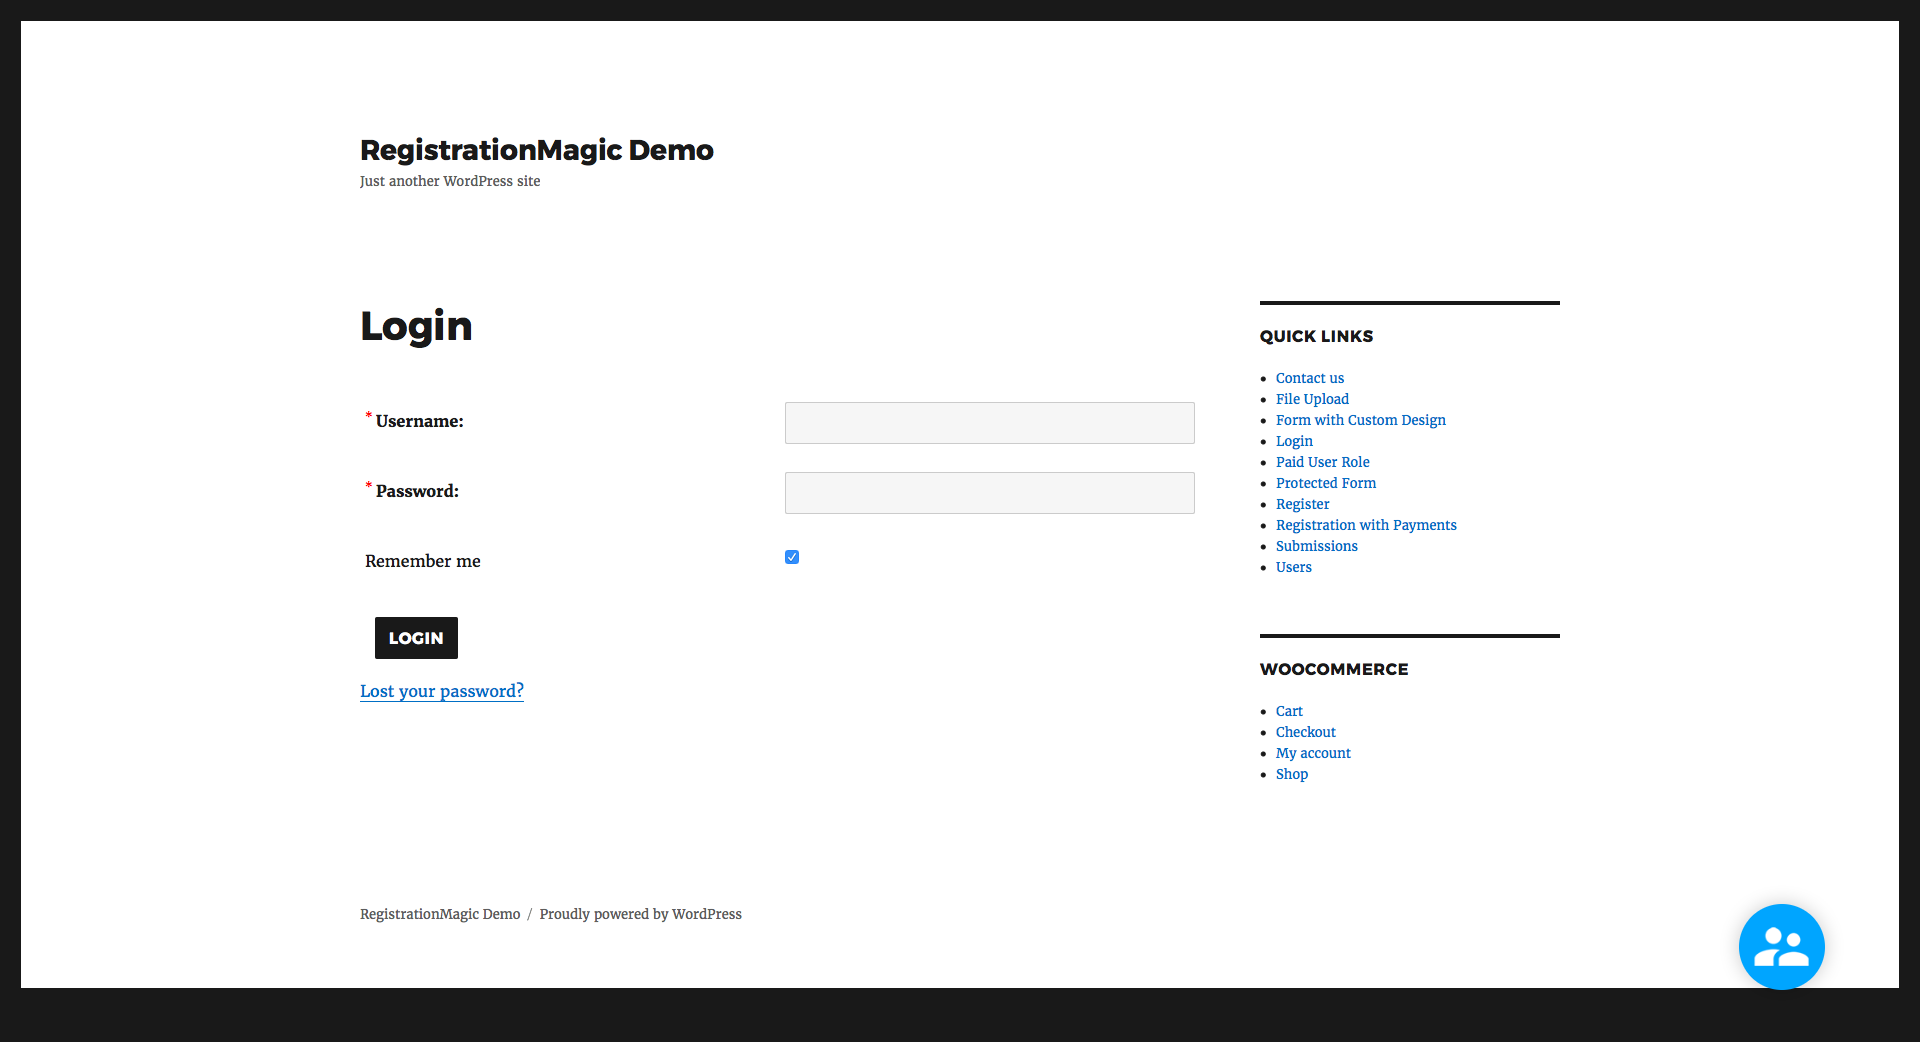 custom-registration-form-builder-with-submission-manager screenshot 3